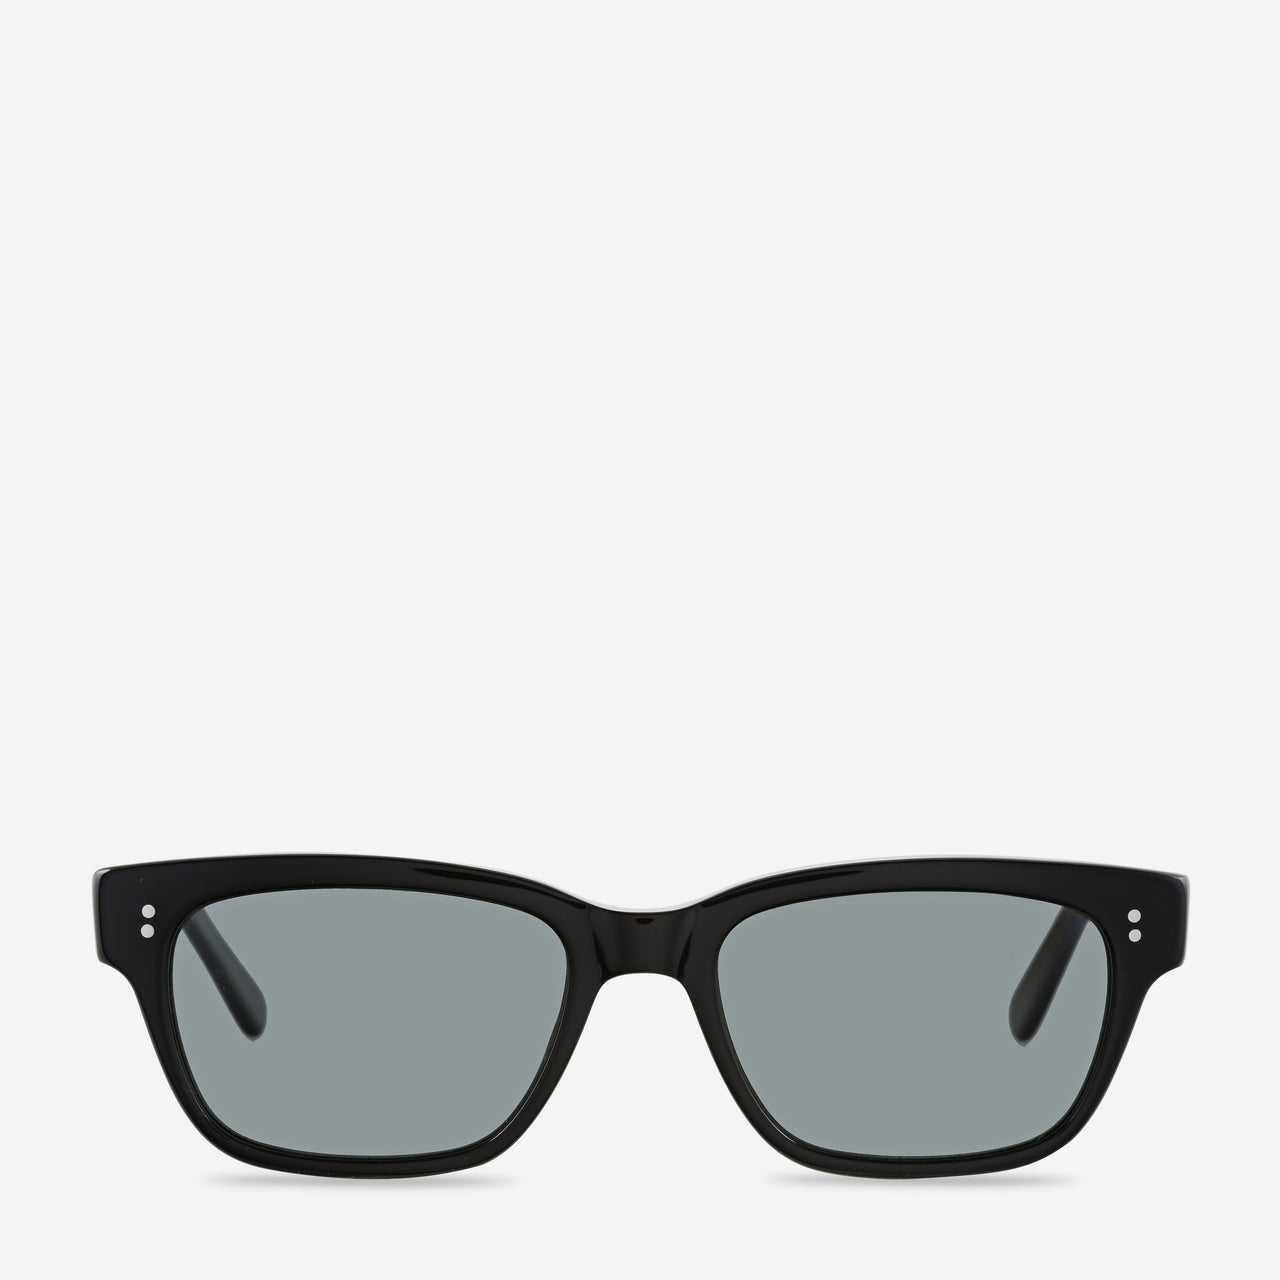 Neutrality Sunglasses - Black